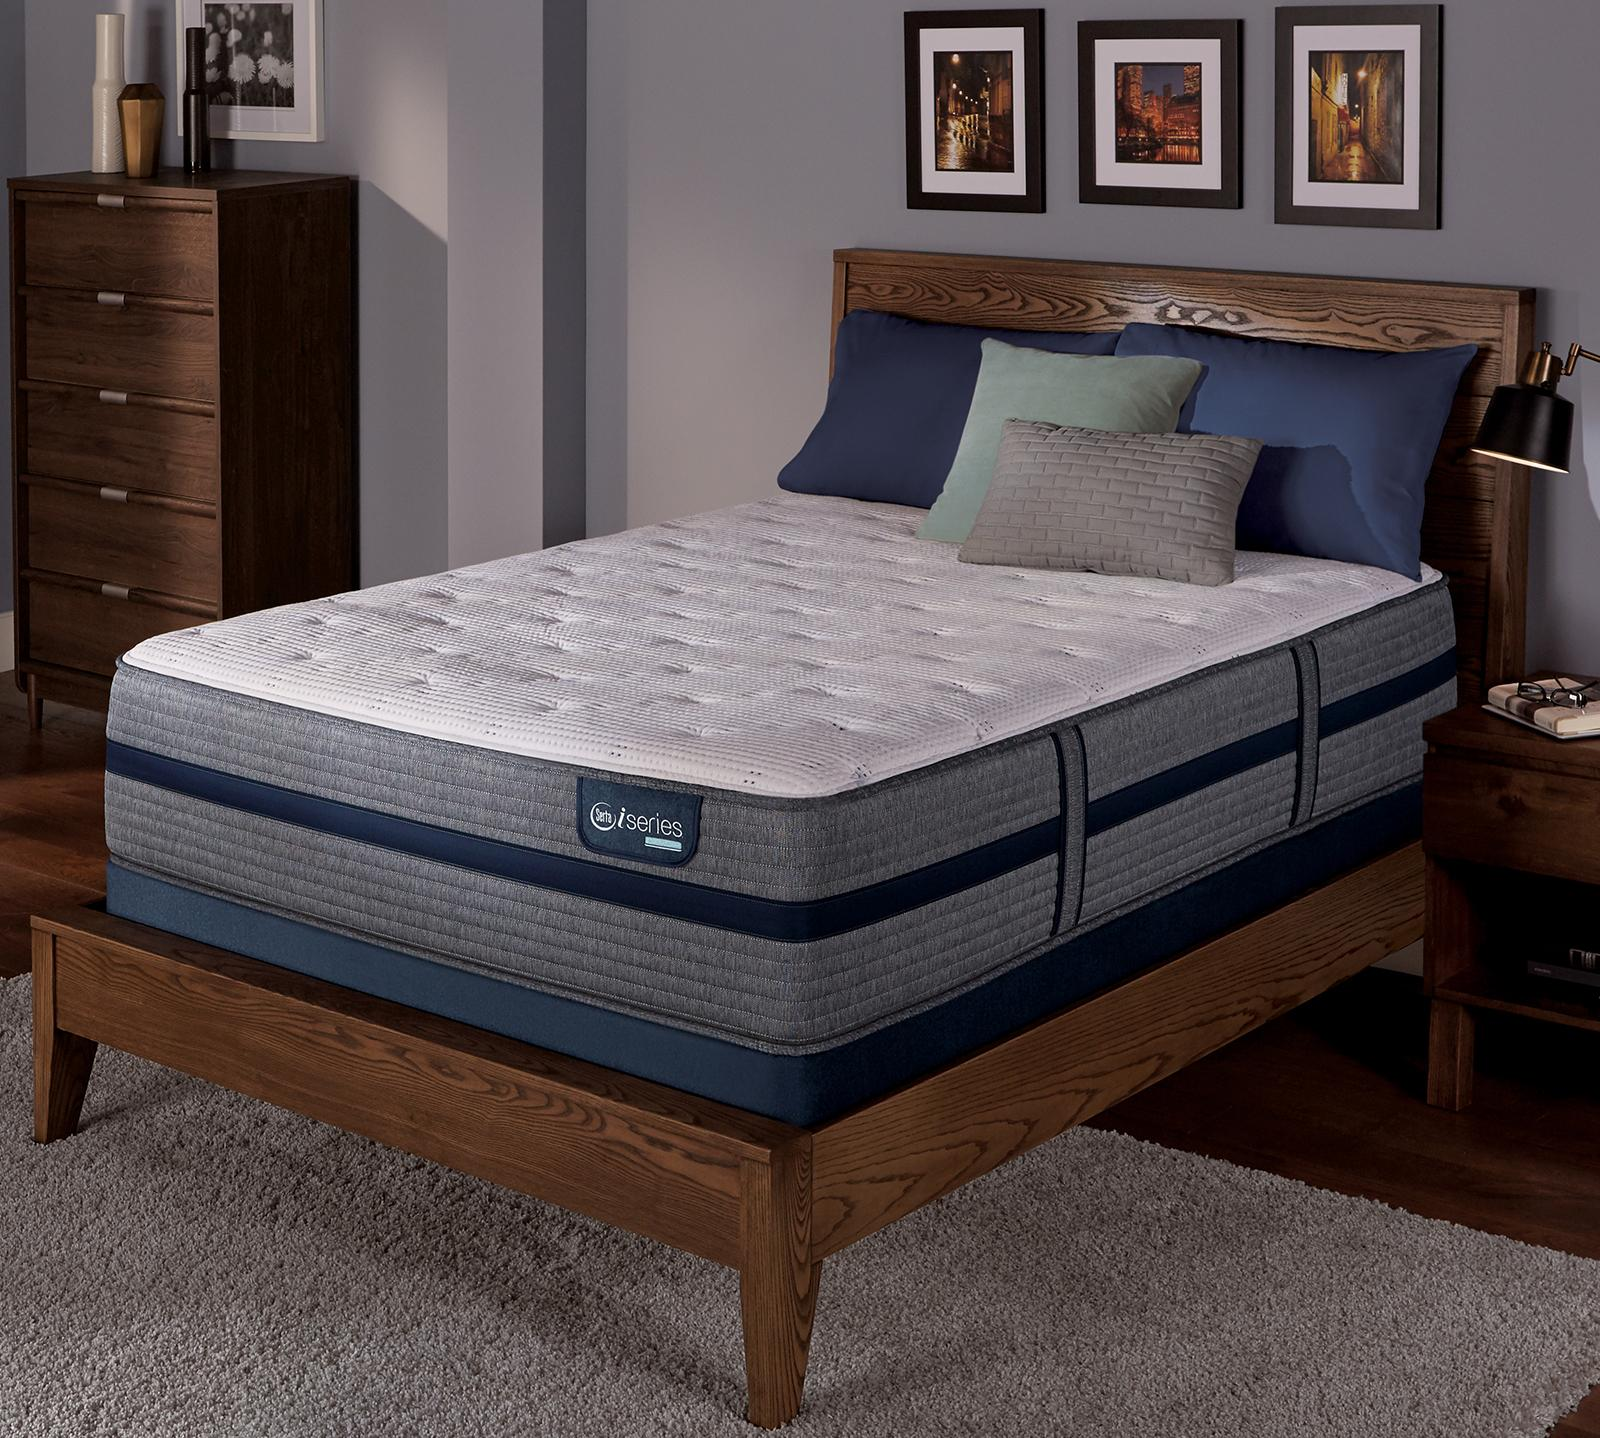 Size Of Queen Bed Iseries Hybrid 300 13 5